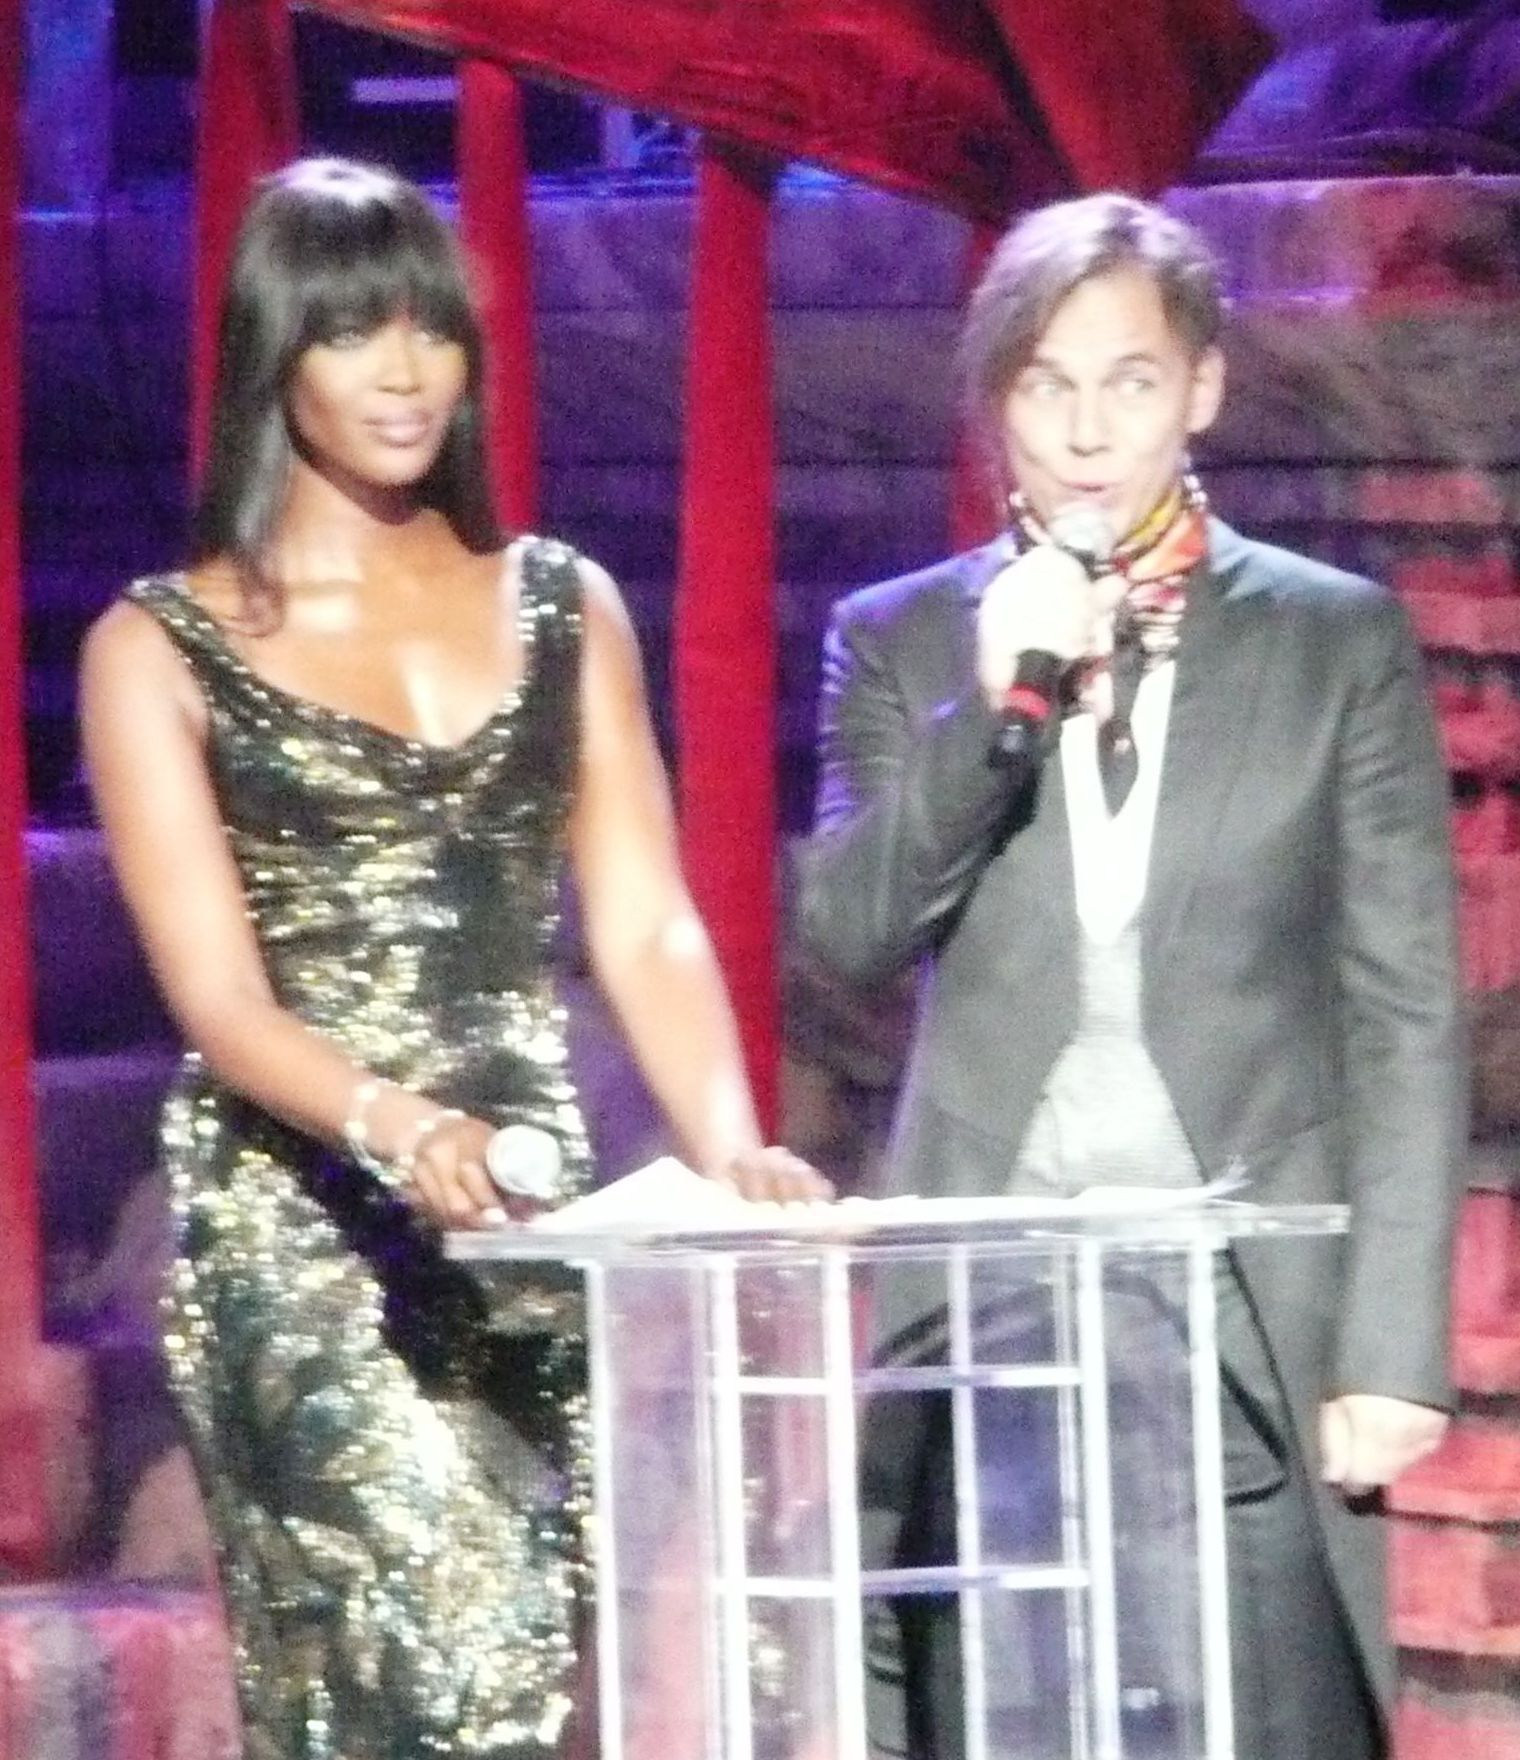 Naomi Campbell & Ilya Lagutenko at the Tiger Forum